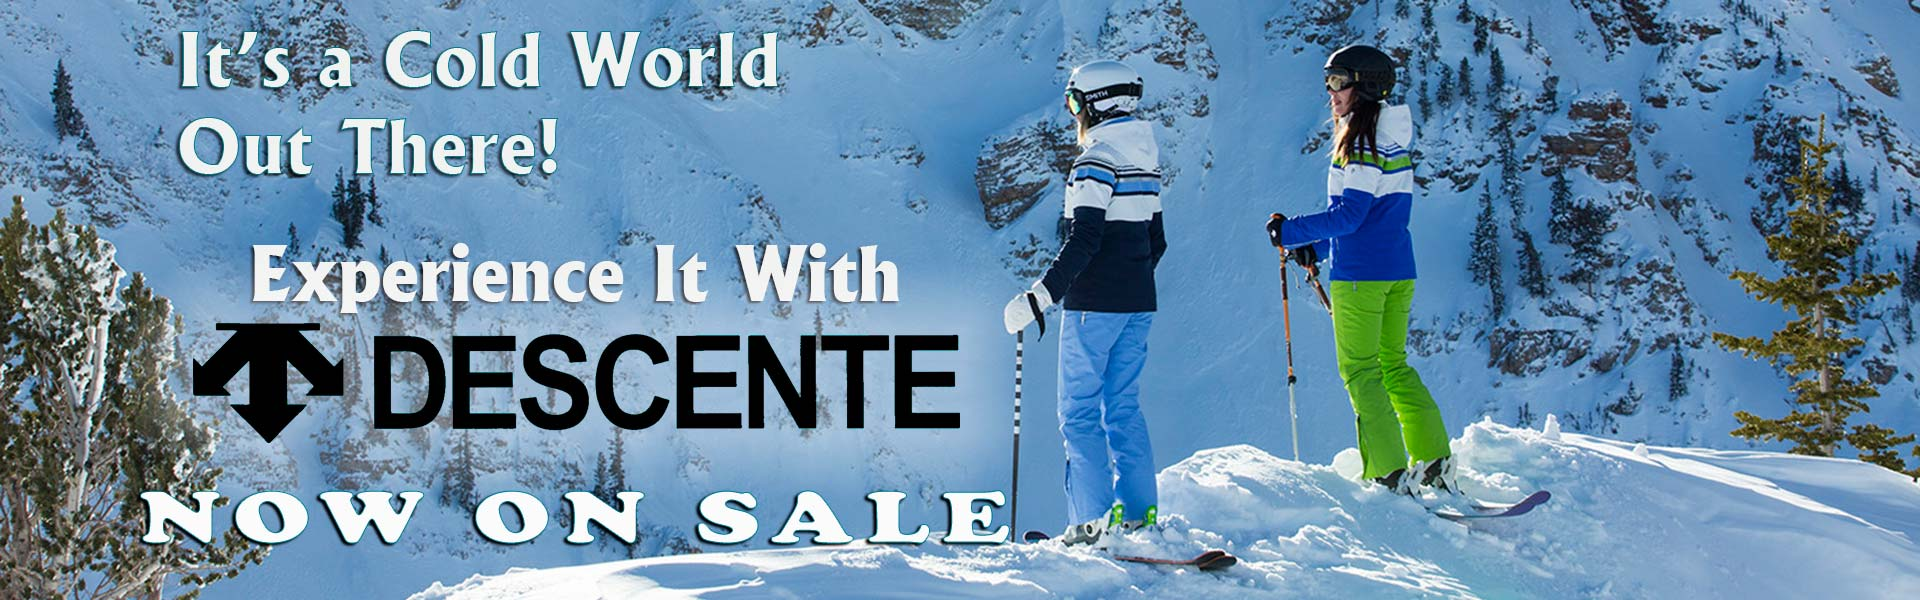 Save on Descente Ski Clothing